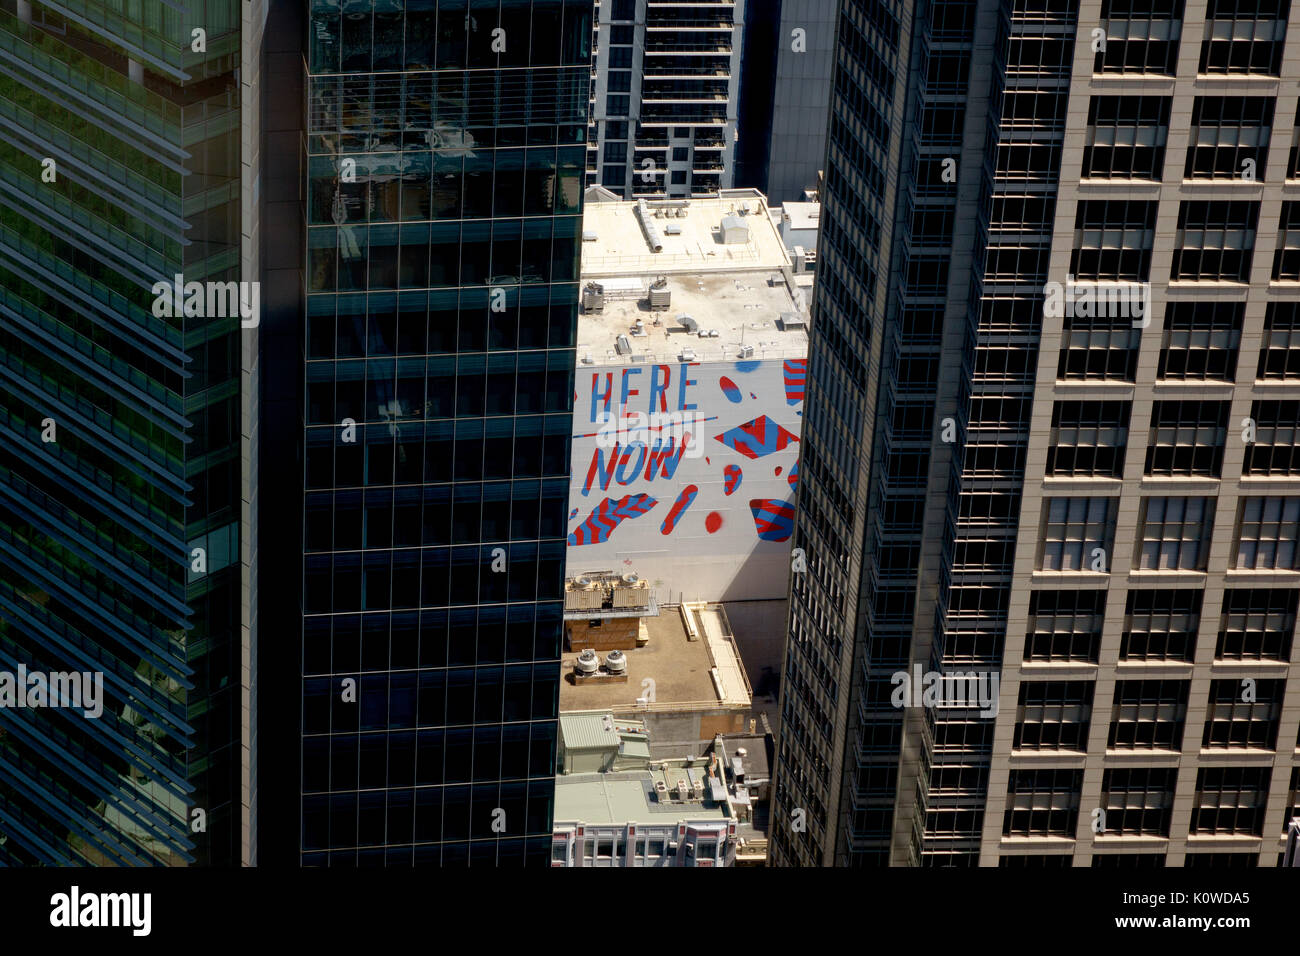 Skyscrapers Framing A Here Now Sign Painted On A Smaller Skyscraper Building Sydney Australia, Aerial View From Sydney Tower Eye - Stock Image